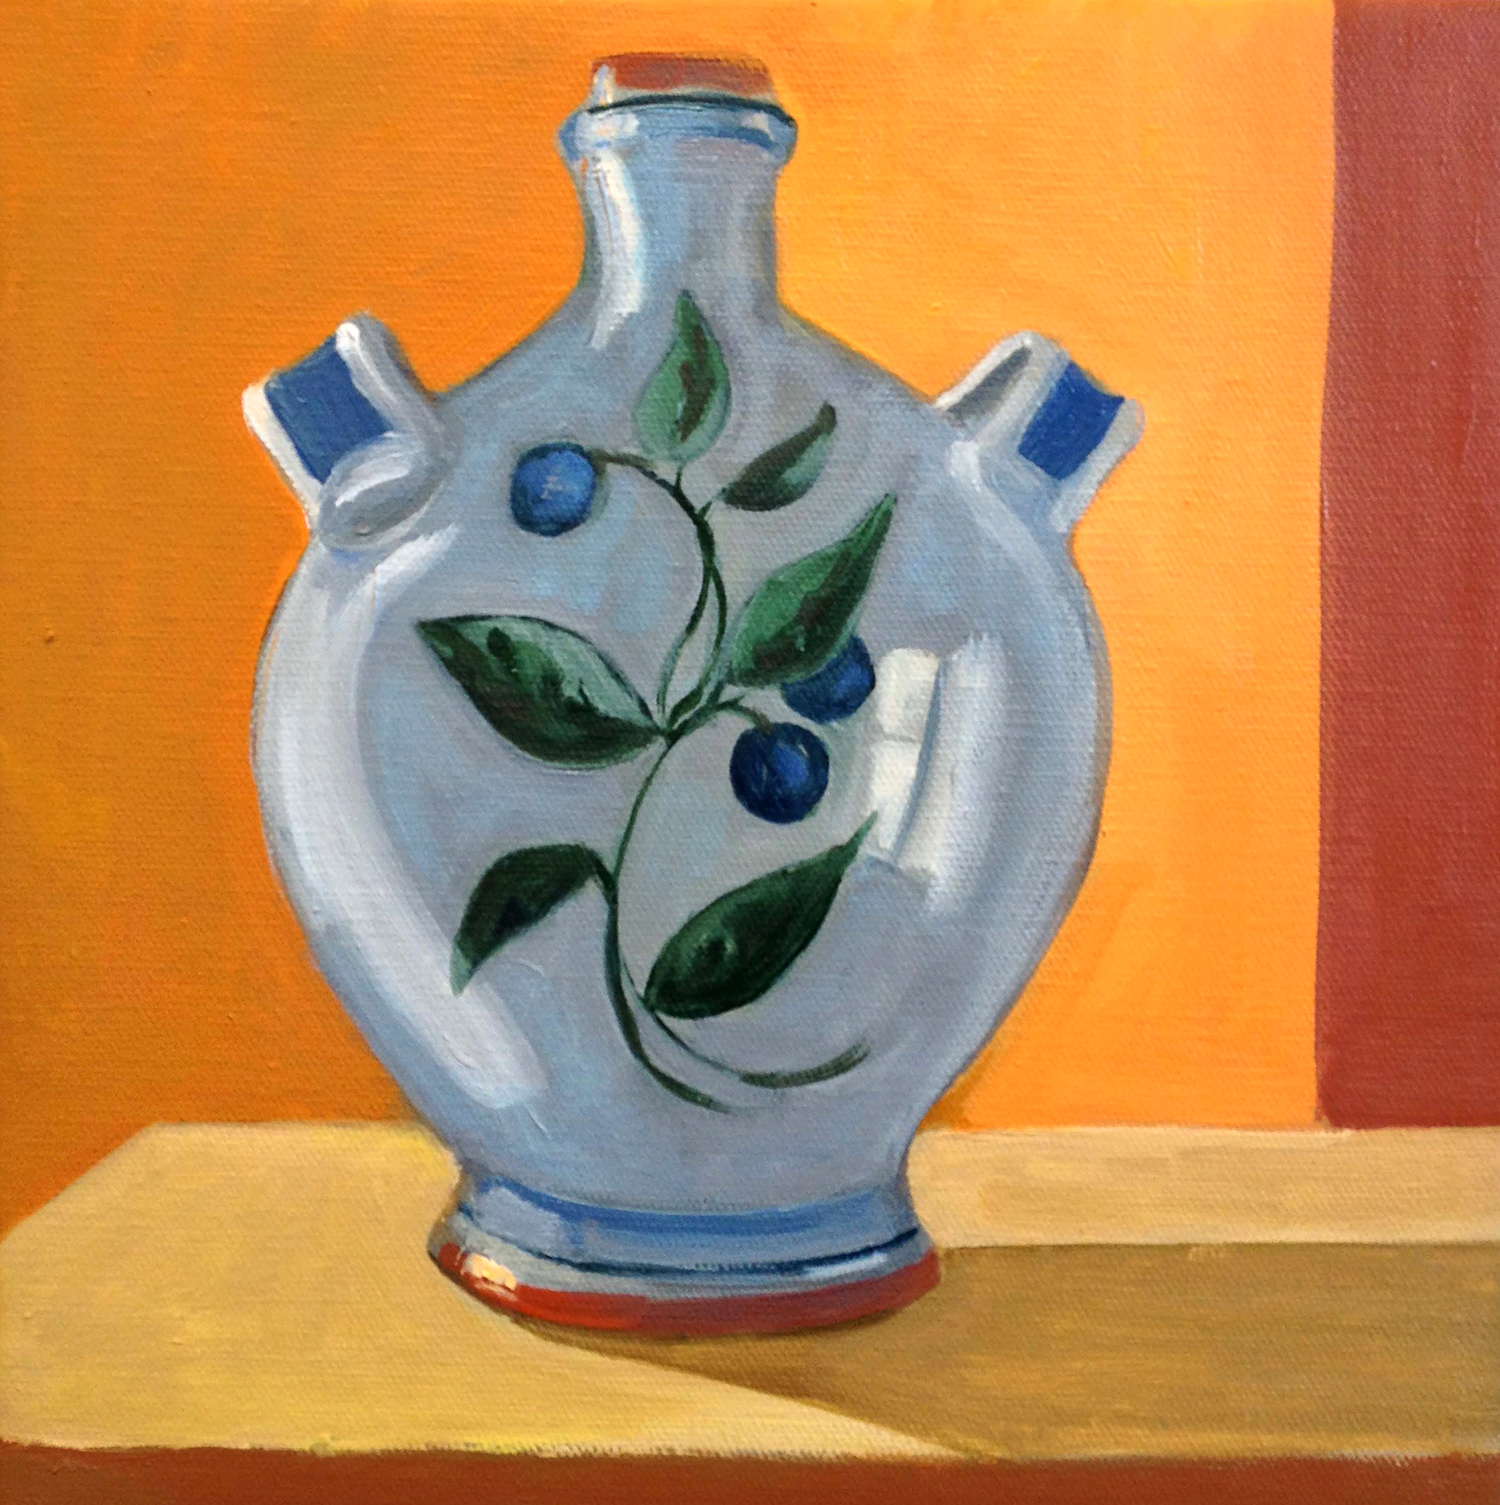 Olio , oil on canvas, 10 x 10 in.